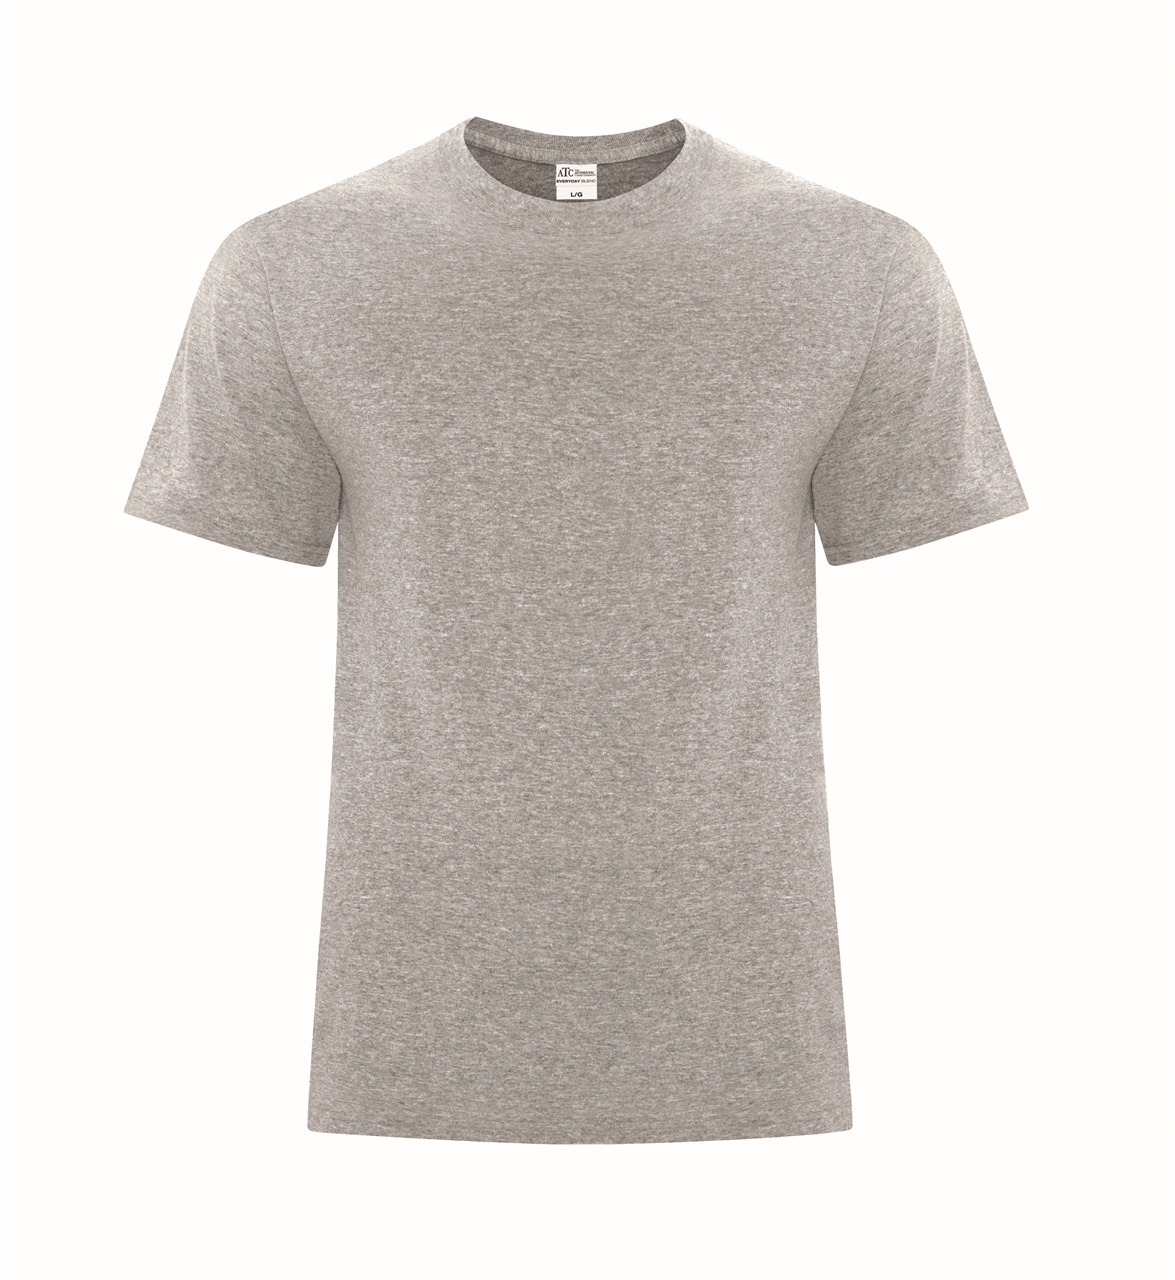 Picture of ATC Everyday Cotton Blend Youth Tee